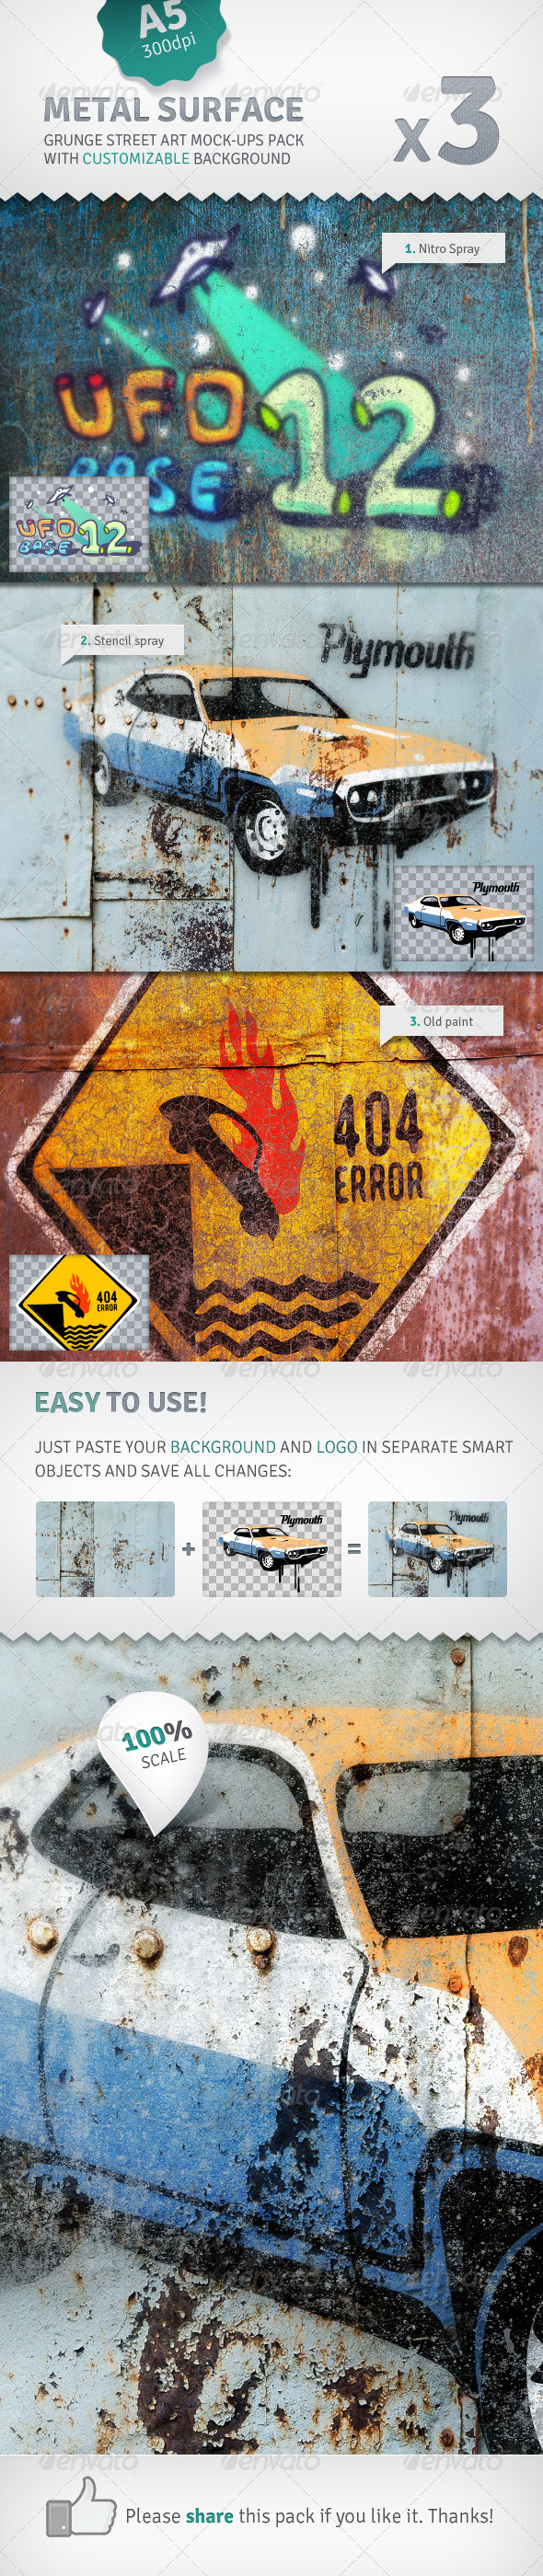 Metal Surface - 3 Graffiti Street Art Mockups - Miscellaneous Displays